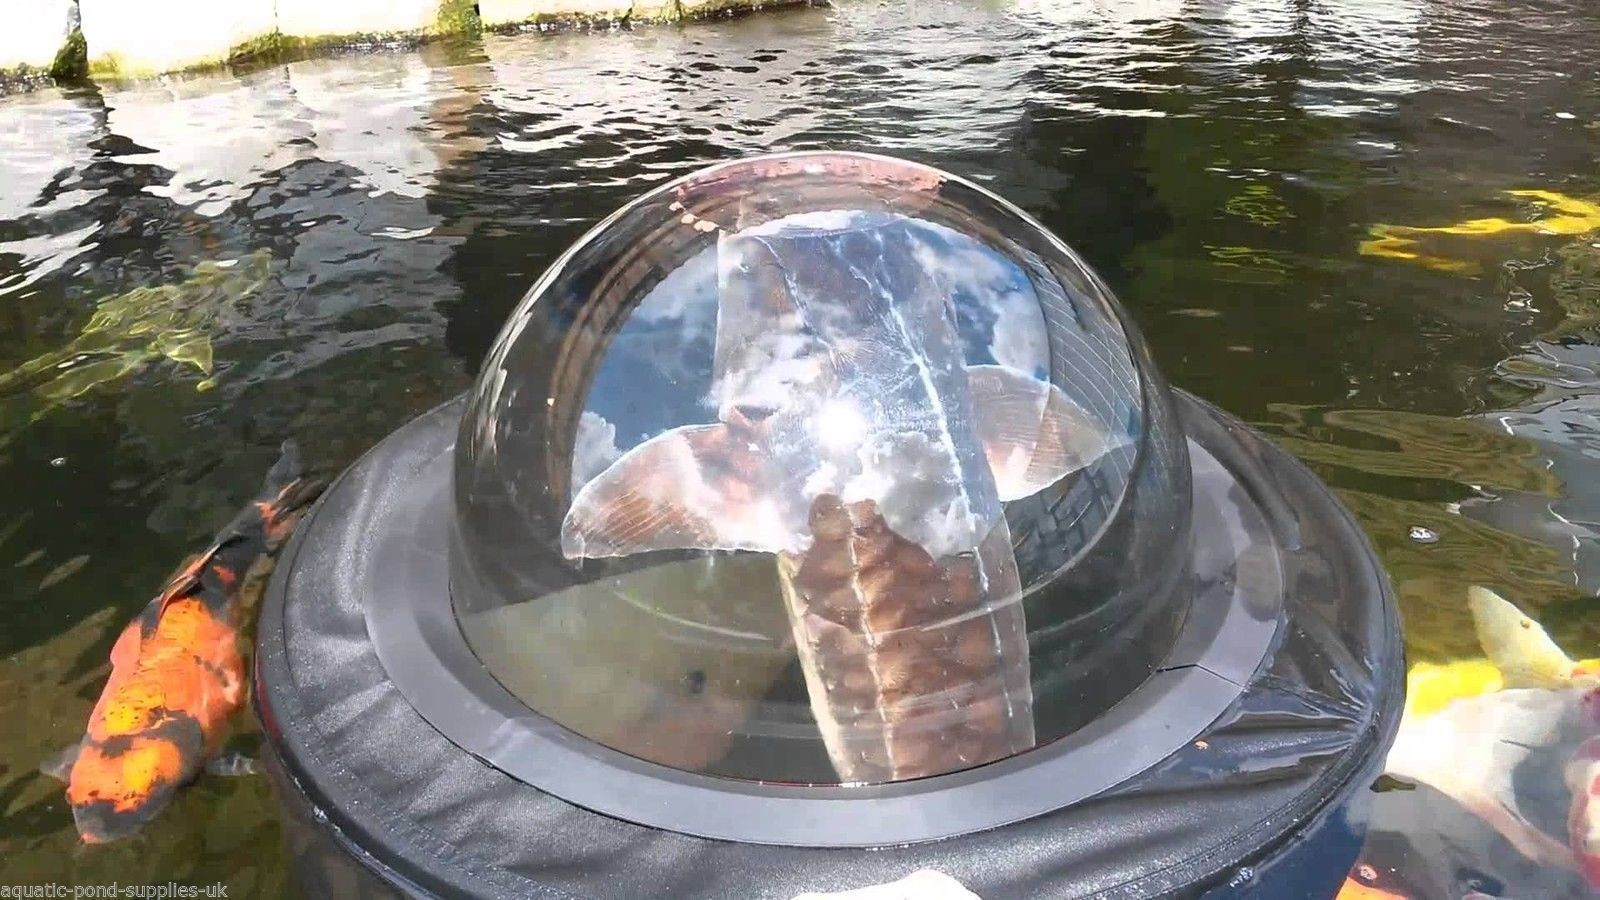 Velda floating fish sphere dome garden pond water koi for Koi pond window